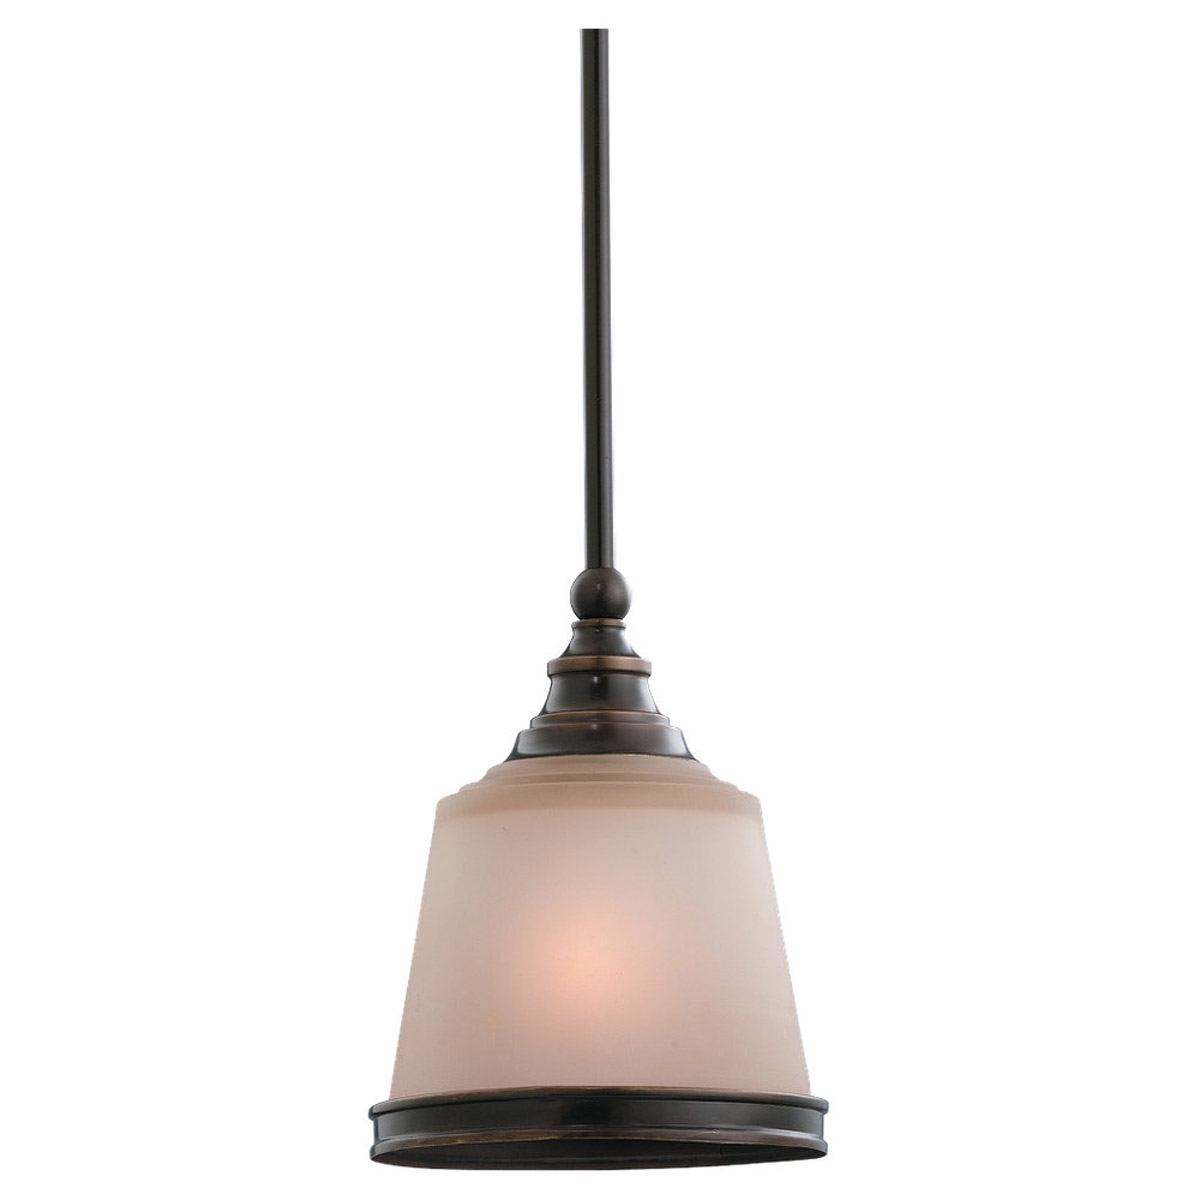 Sea Gull Lighting Warwick 1 Light Mini Pendant in Vintage Bronze 61330-825